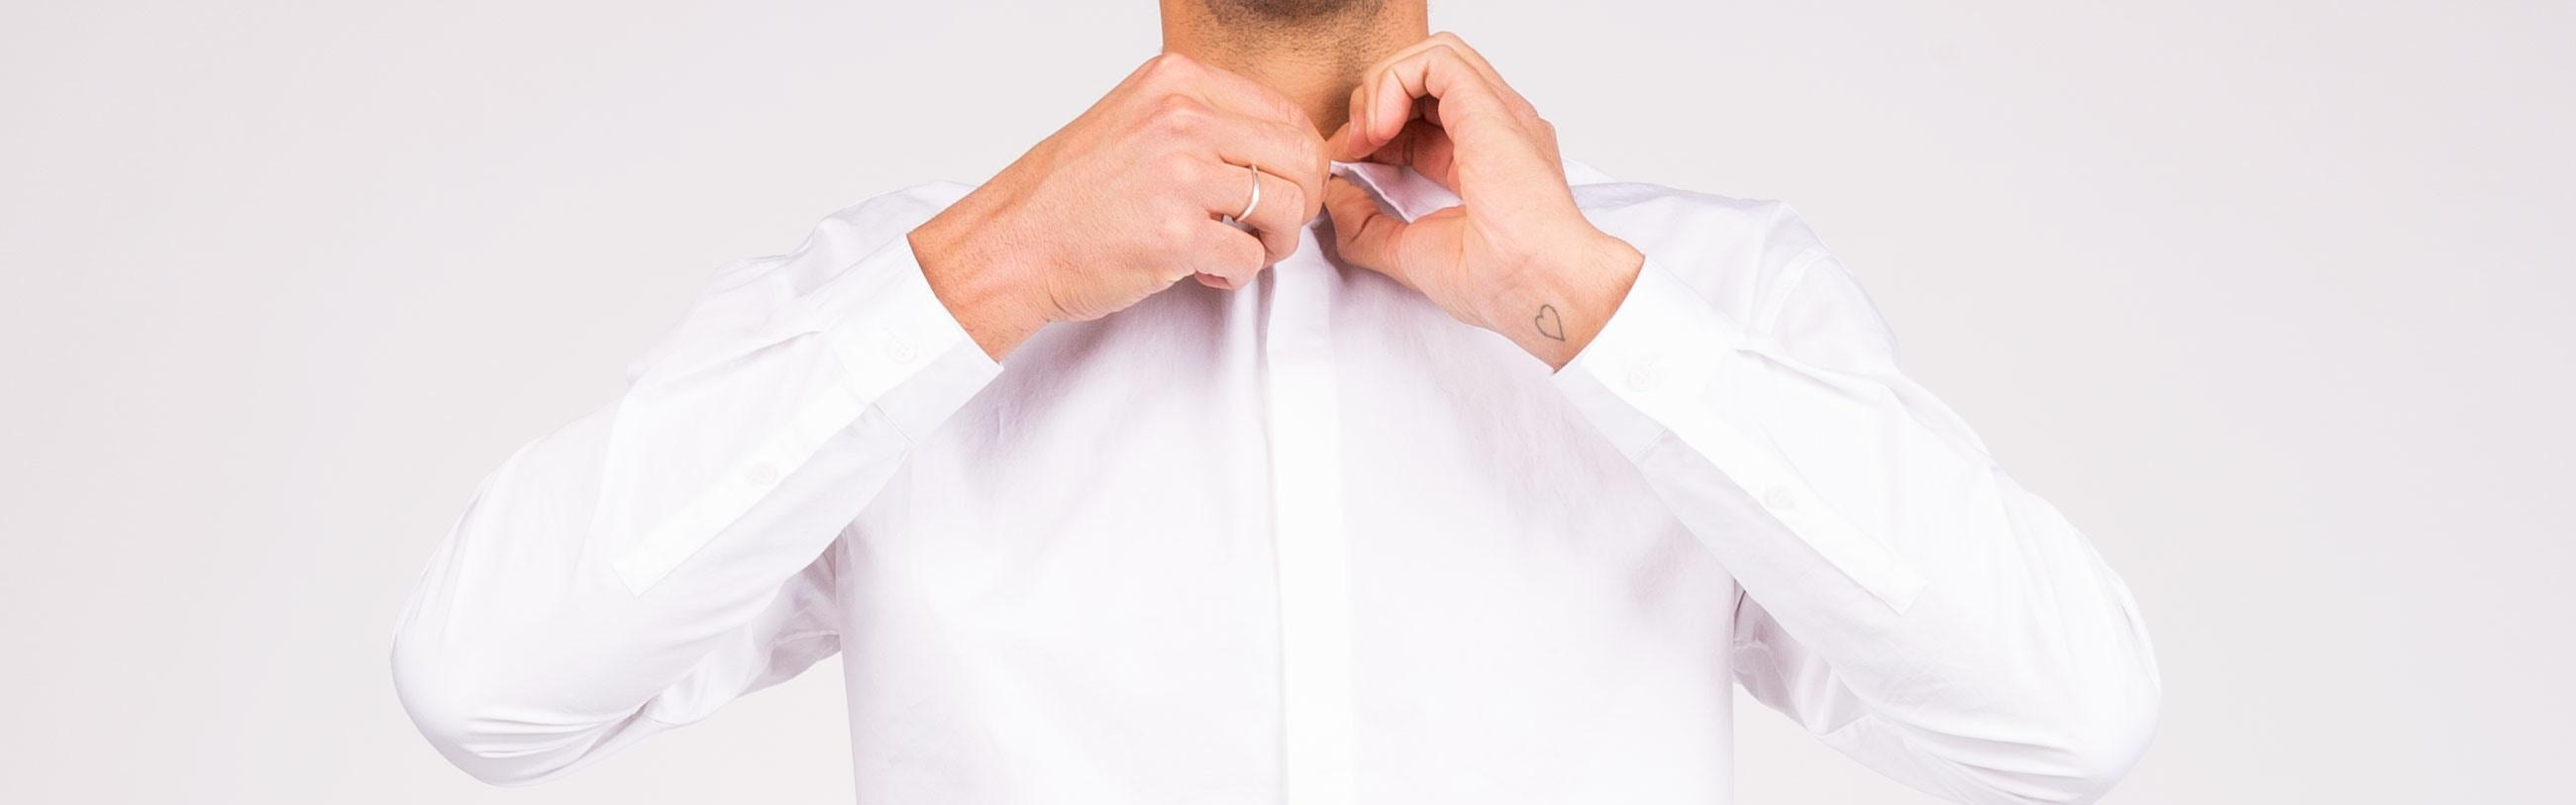 Man doing up collar of white shirt